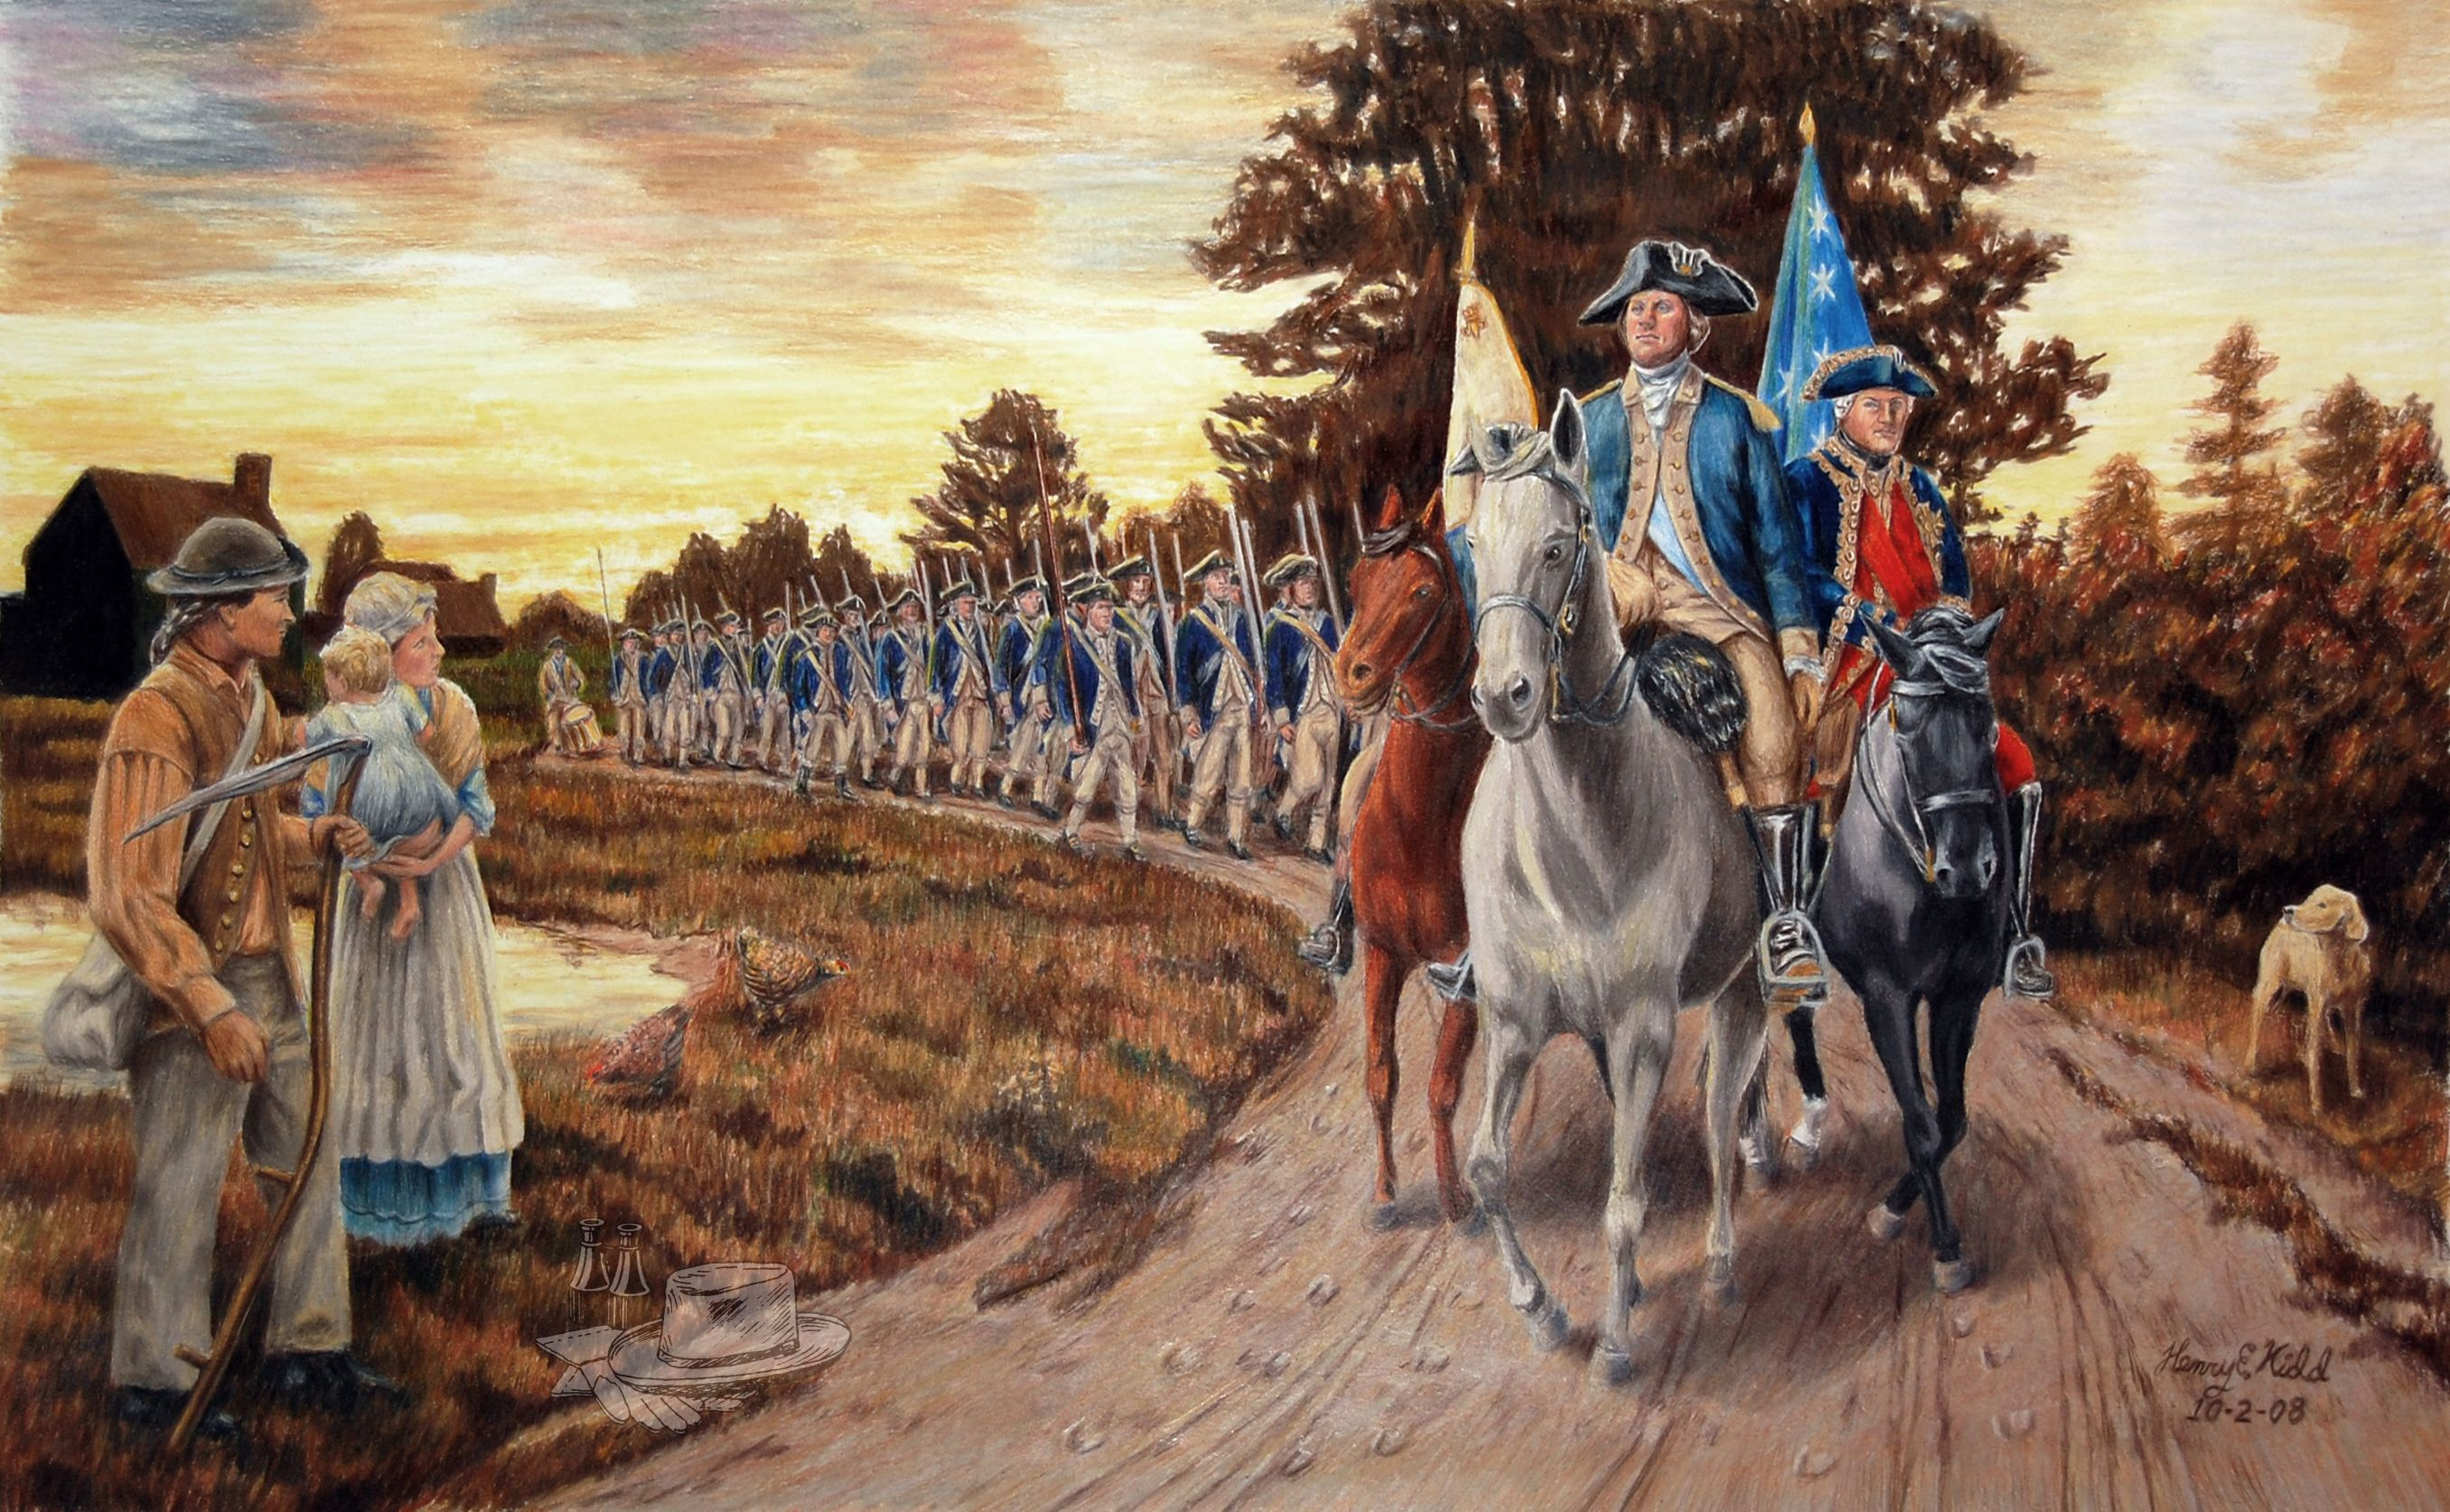 Discipline Is The Soul With Images American Revolutionary War